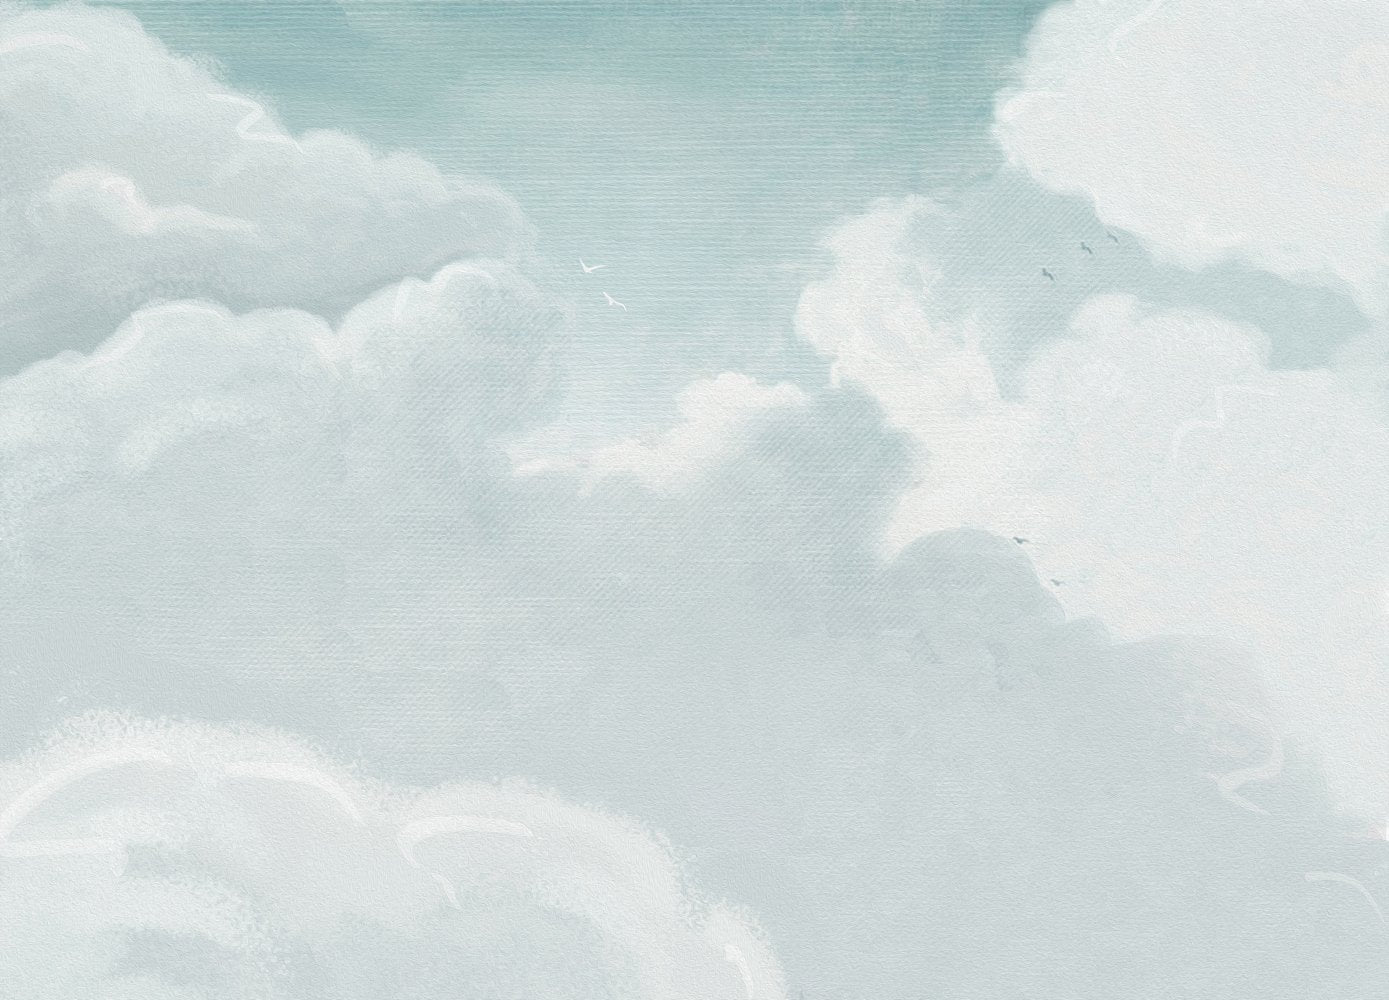 nuage wallpaper